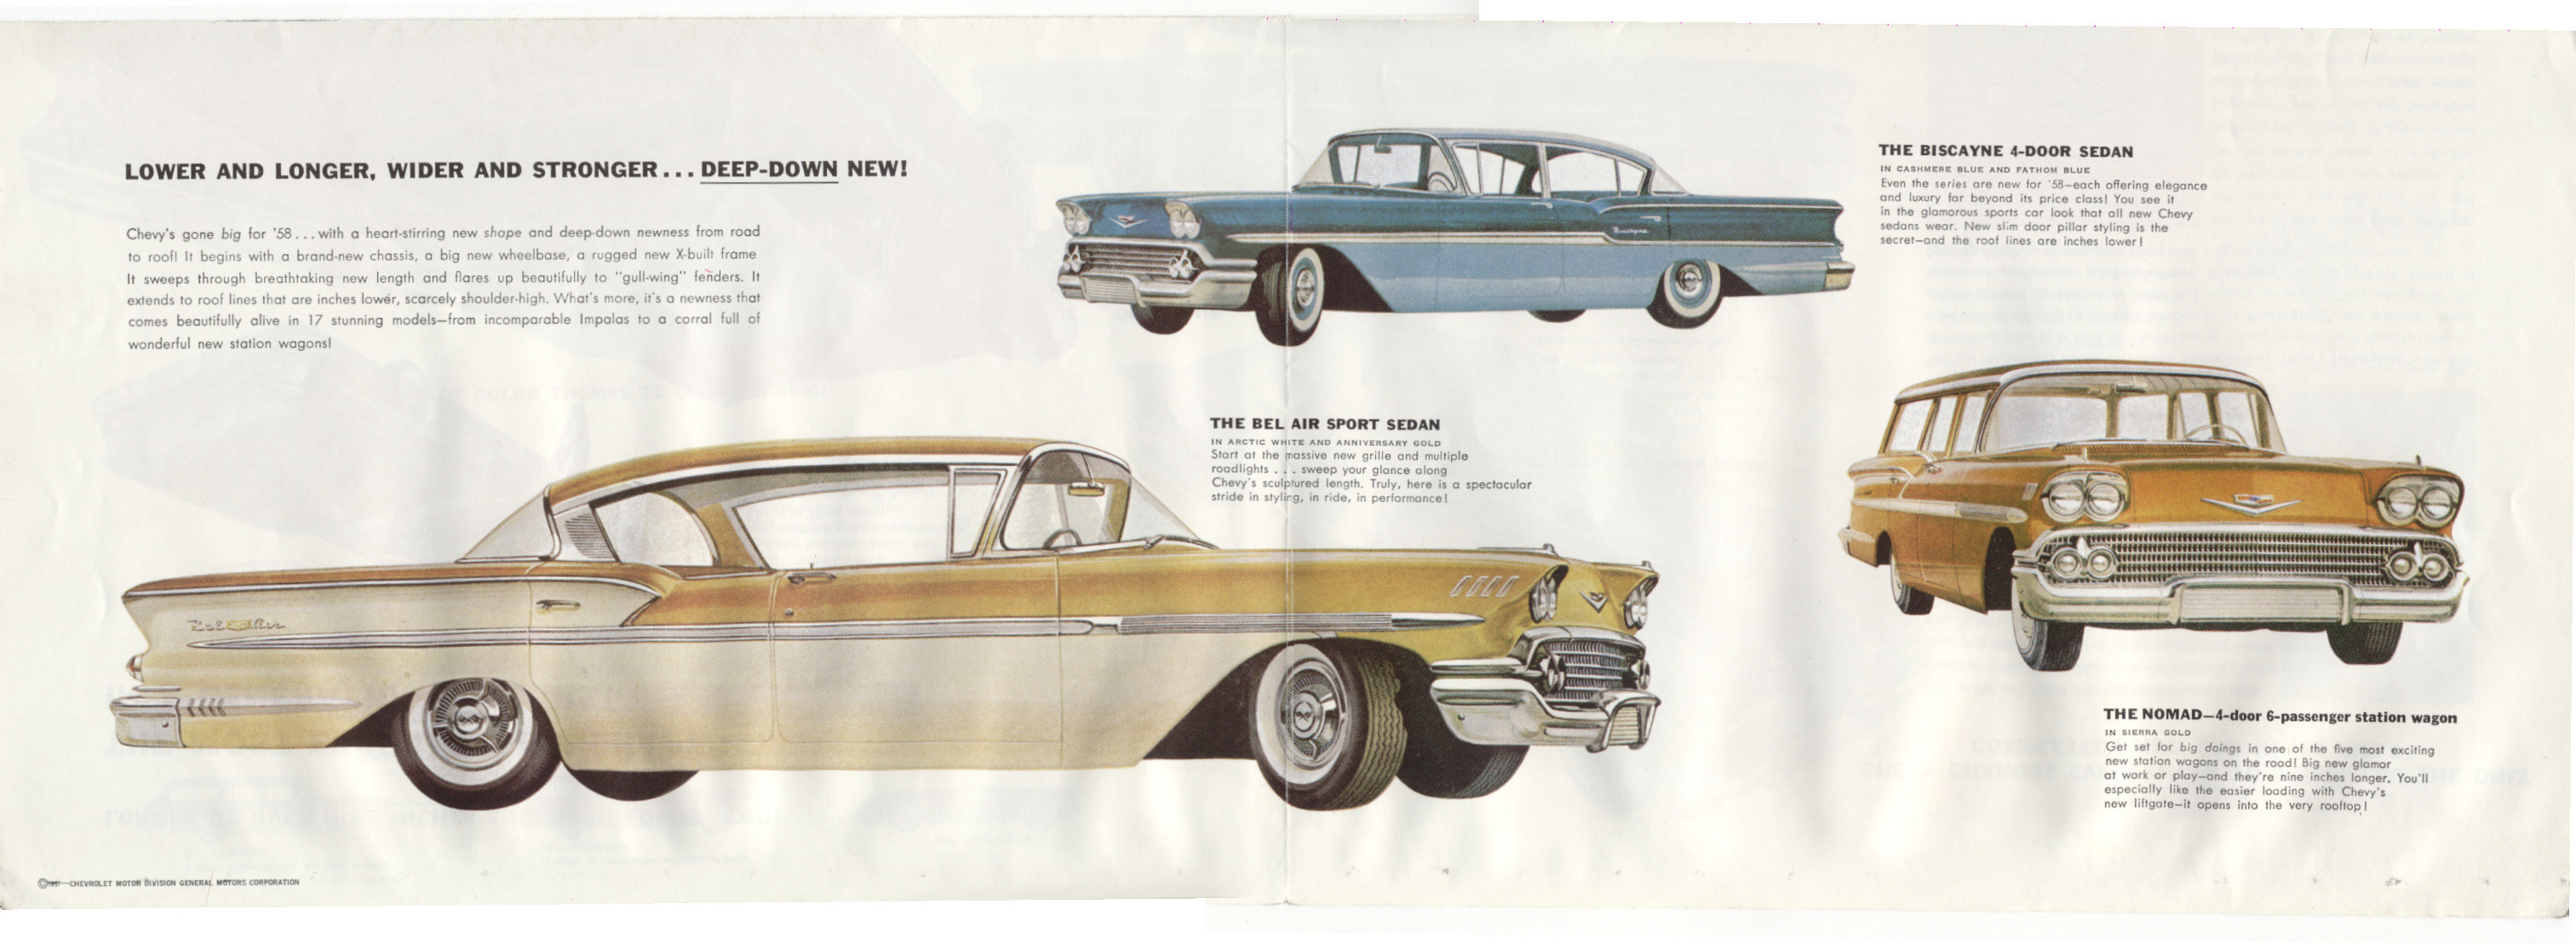 1958 Impala Anniversary Gold Edition Chevy Message Forum 57 Factory Colors Http Tocmpcom Brochures Chev Images Poster Mid